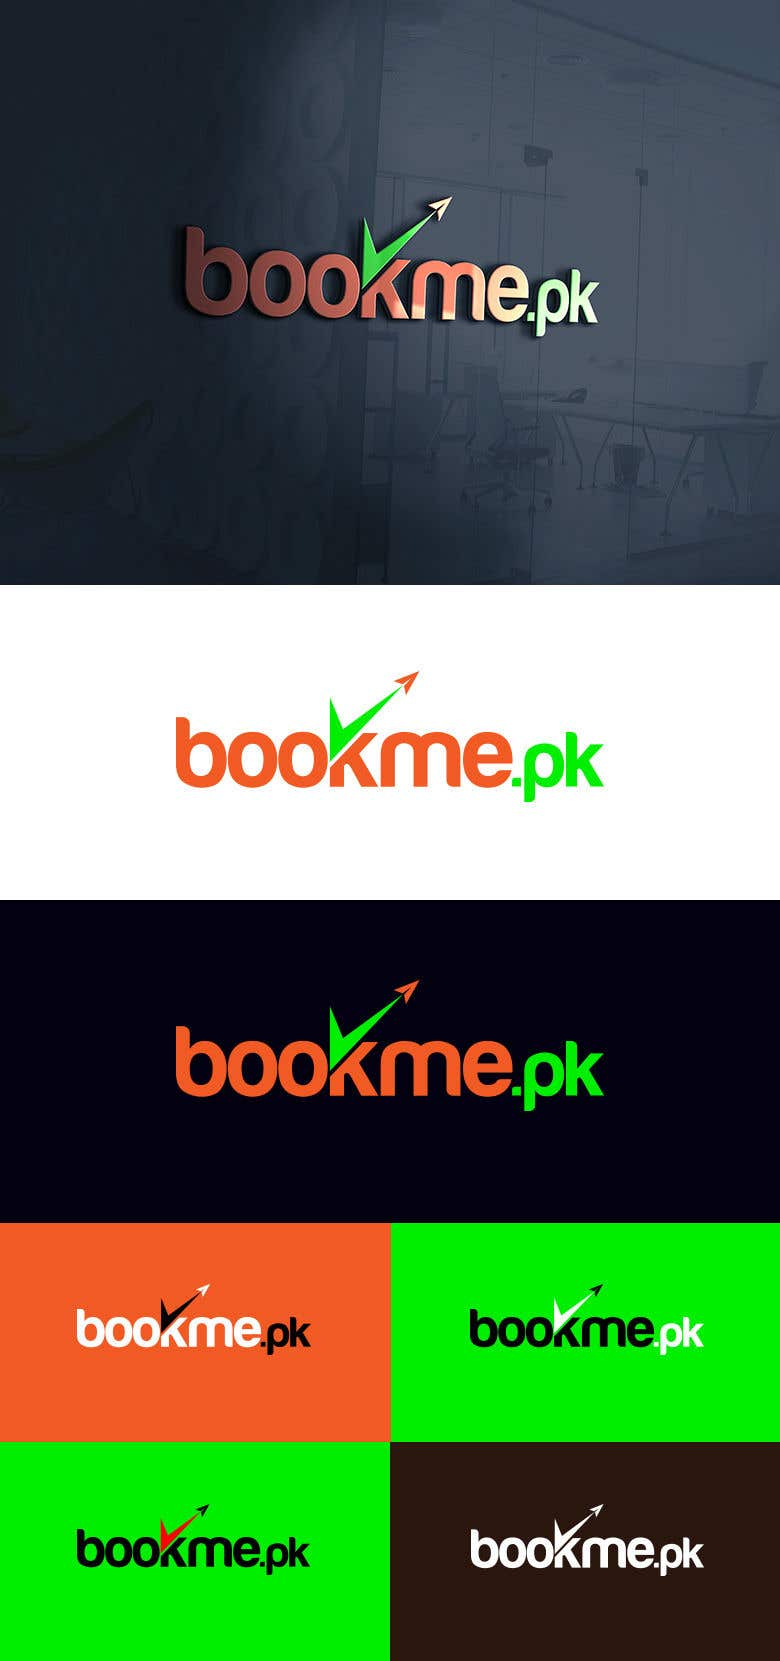 Contest Entry #276 for Design a Logo for a company that does Cinema, Bus and Events ticketing online.